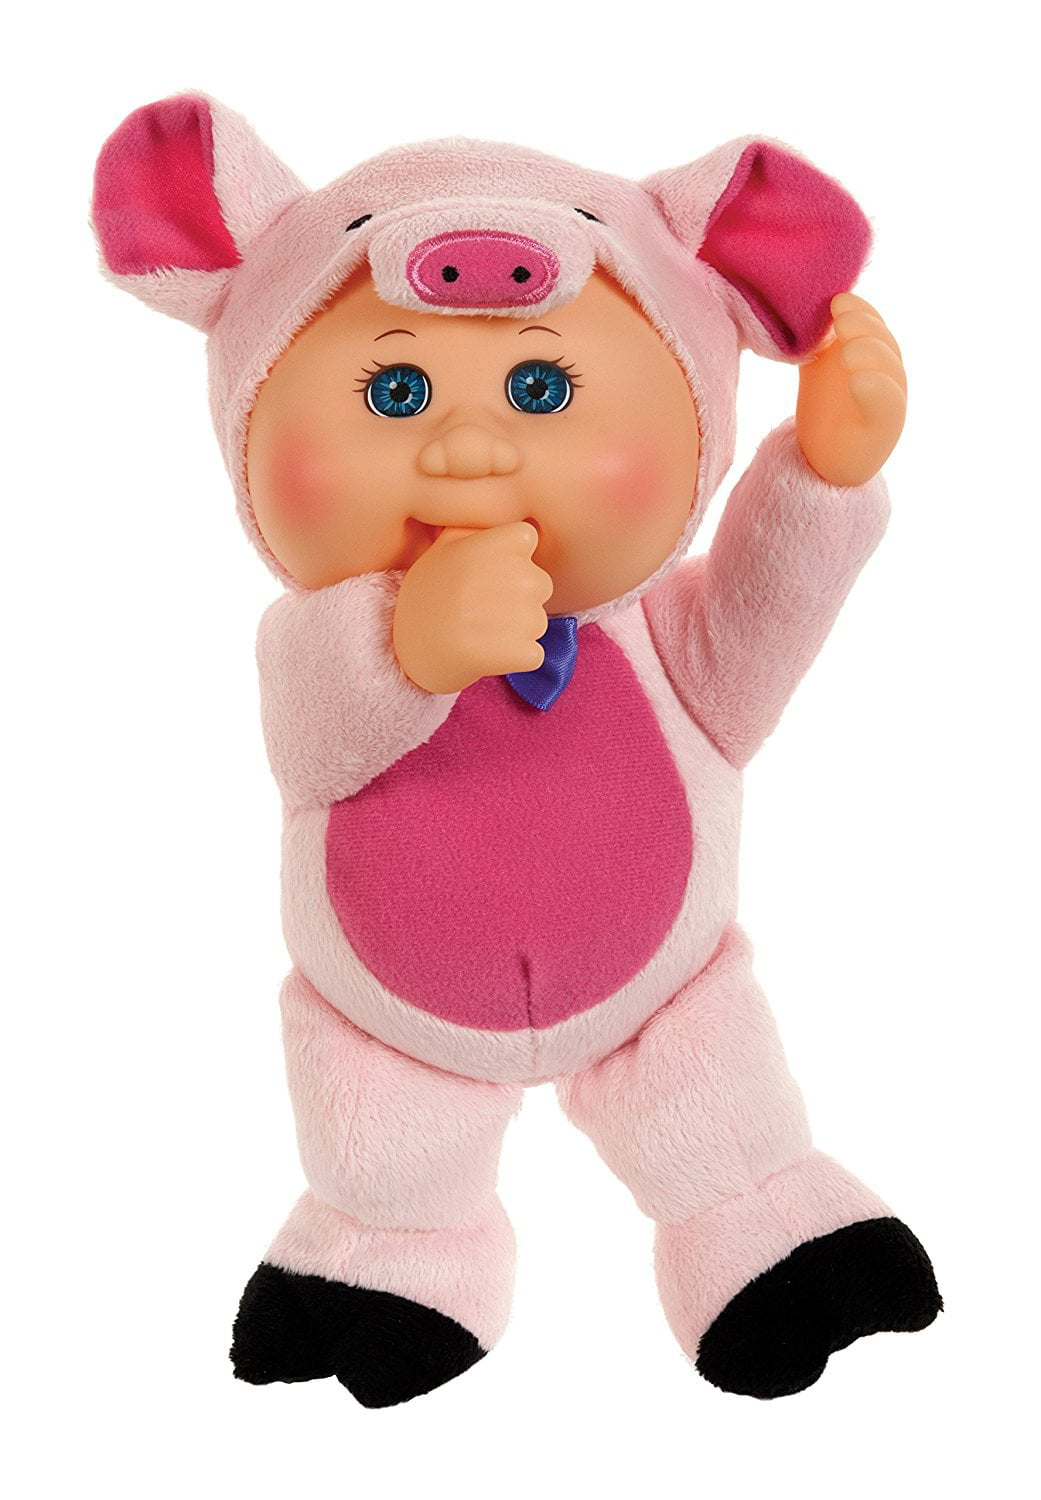 Cabbage Patch Kids Christmas Babies 2020 Cabbage Patch Kids Cuties Collection, Petunia the Pig Baby Doll 9